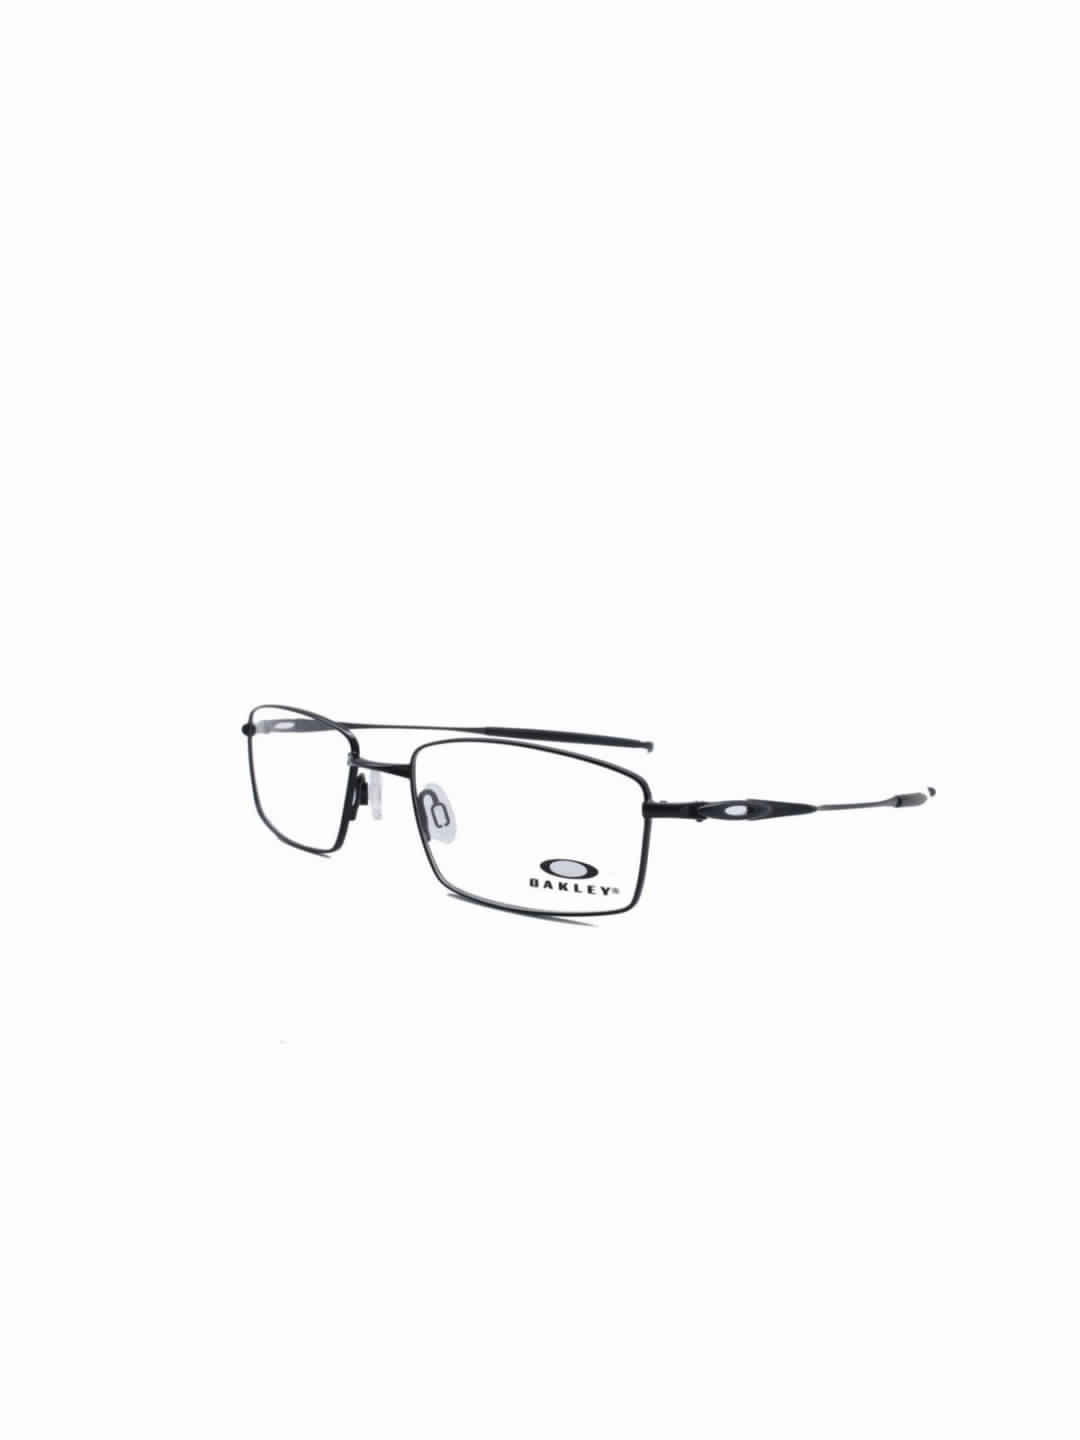 Oakley OA 5140 0254 Rectangle Brown Half Frame With Stainless Steel